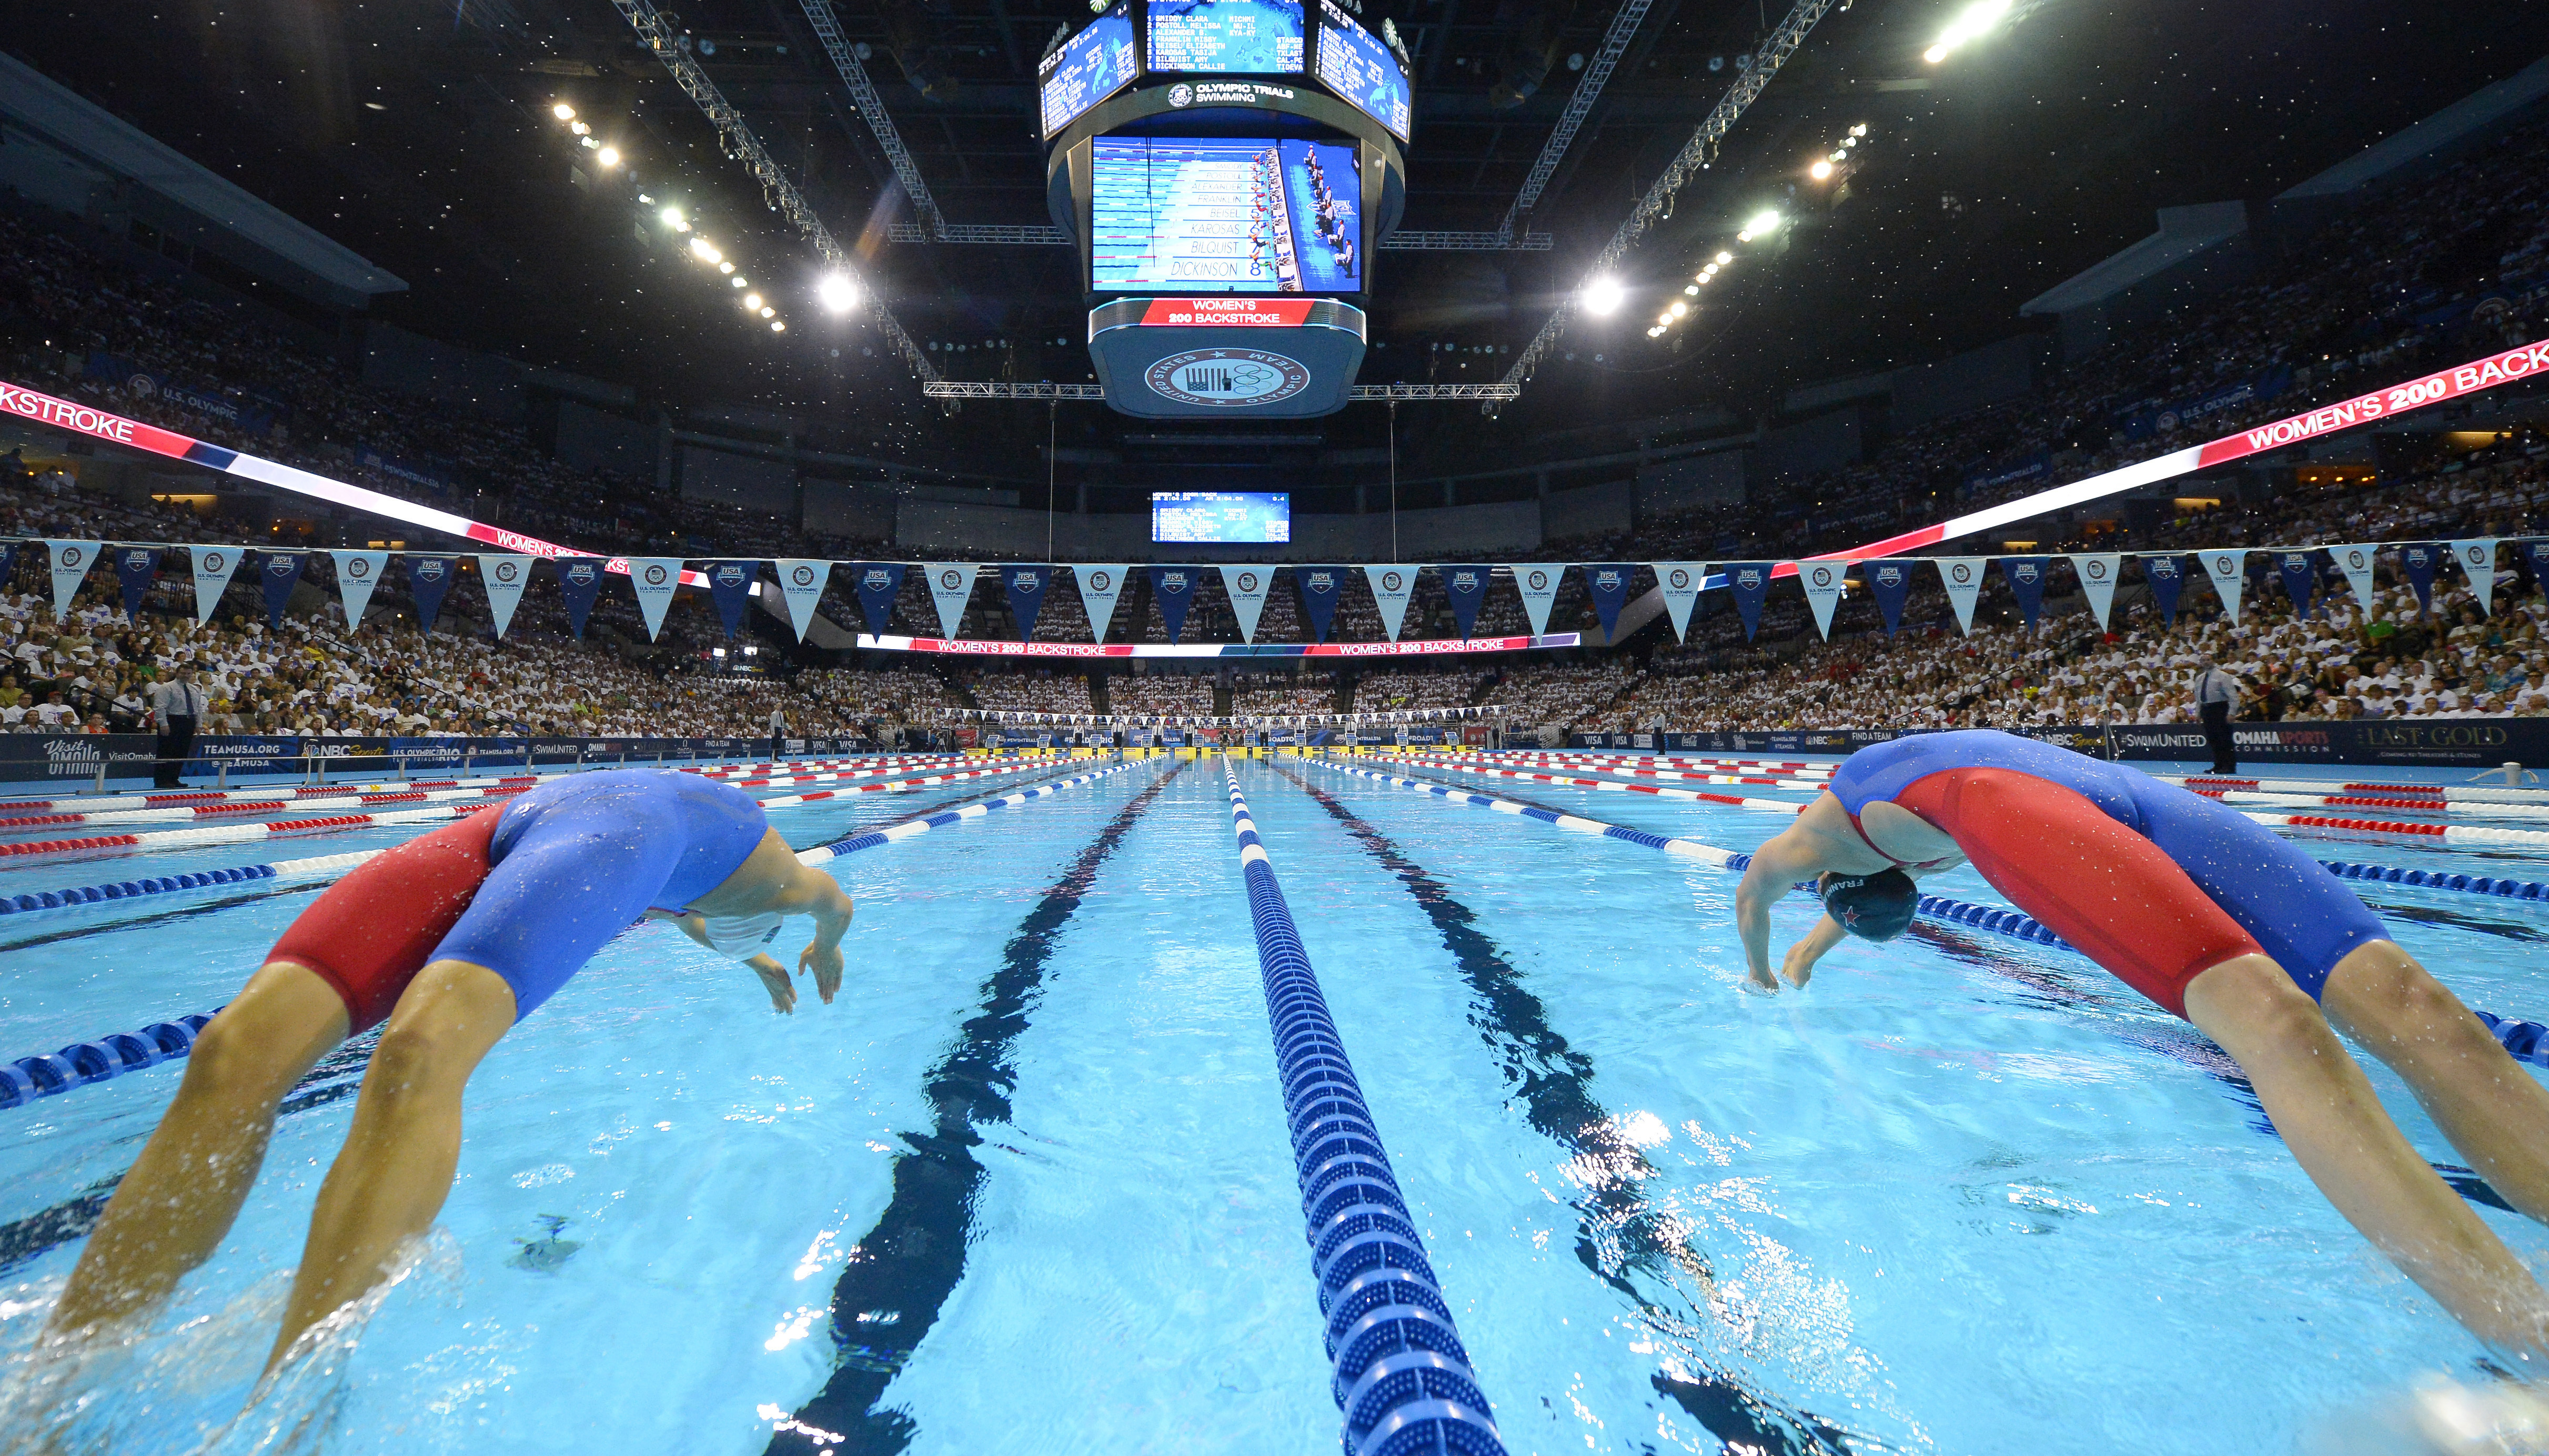 Elizabeth Beisel, left, and Missy Franklin start the women's 200-meter backstroke semifinal at the U.S. Olympic swimming trials, Friday, July 1, 2016, in Omaha, Neb. (AP Photo/Mark J. Terrill)